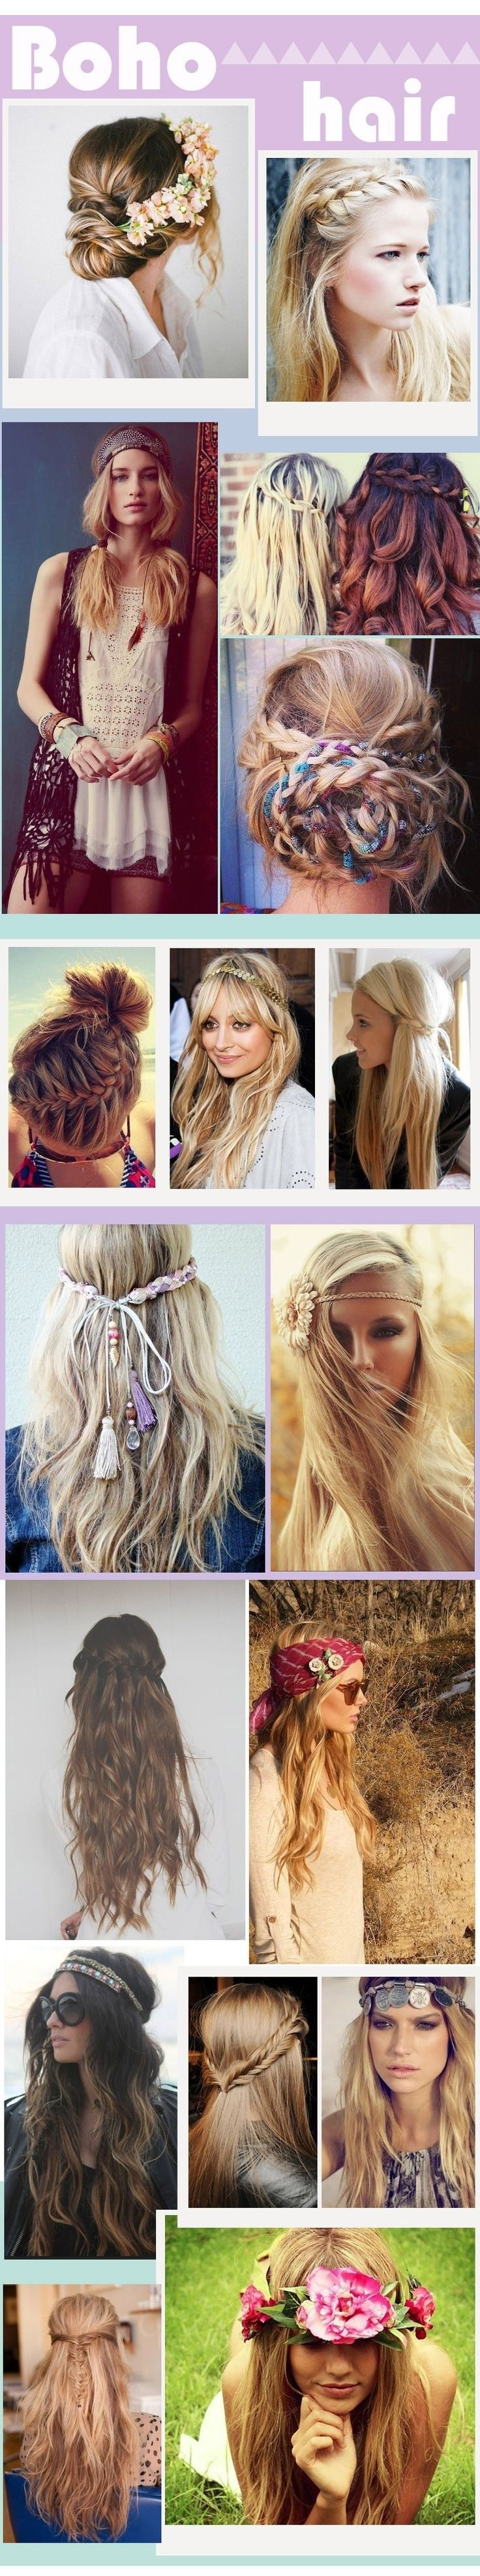 Boho Hairstyles Ideas